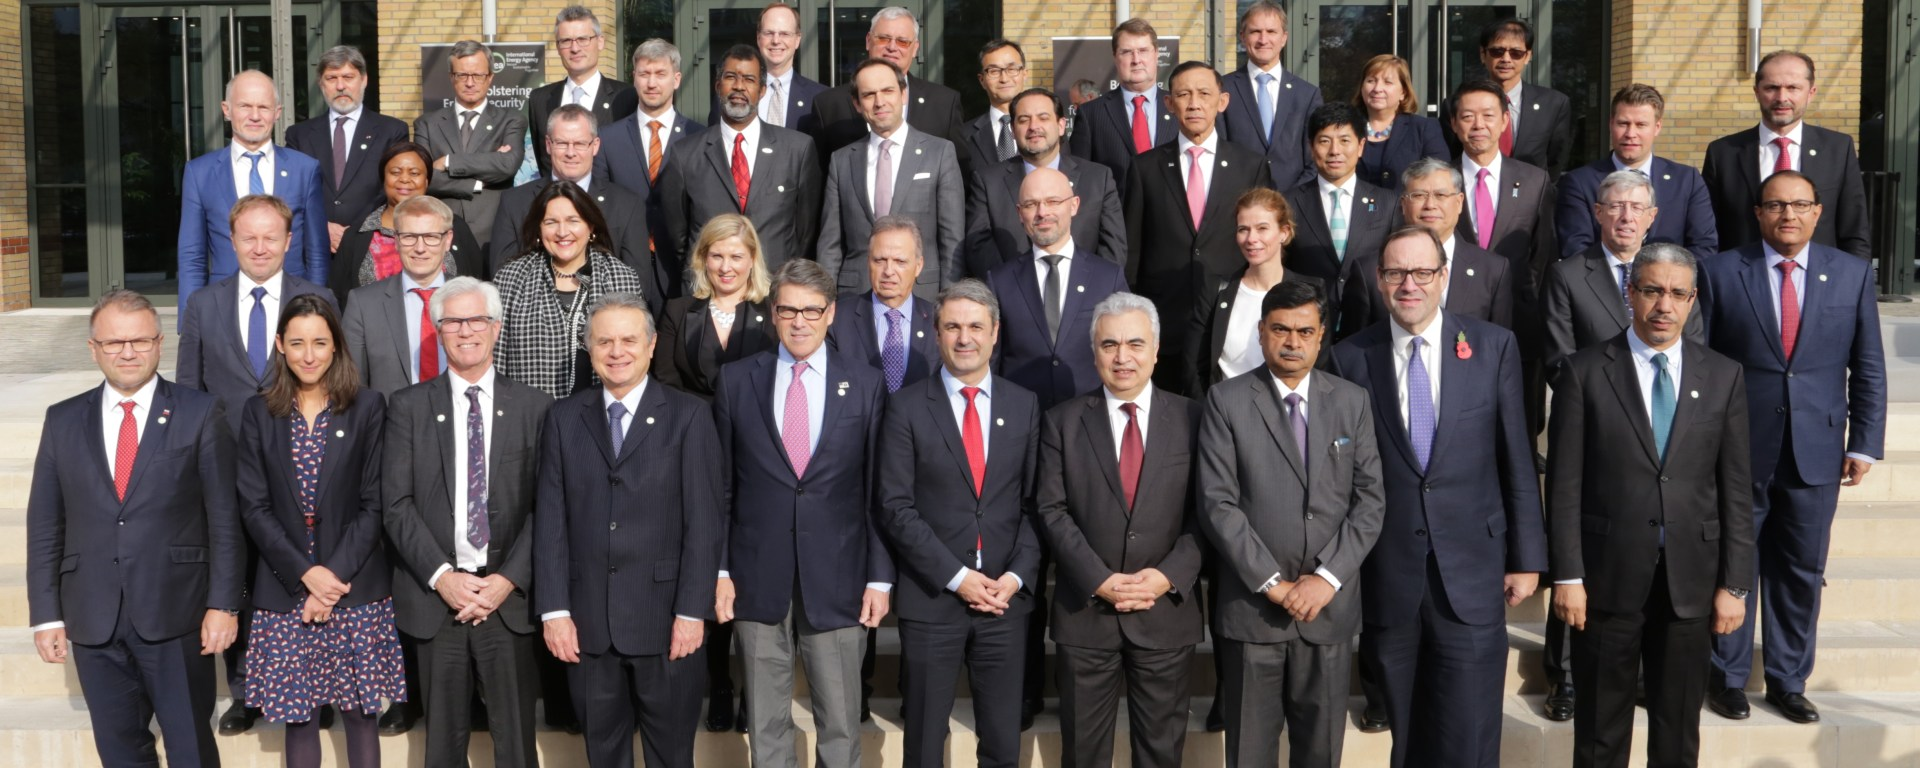 Group photo of energy ministers at the IEA Ministerial, Nov 2017